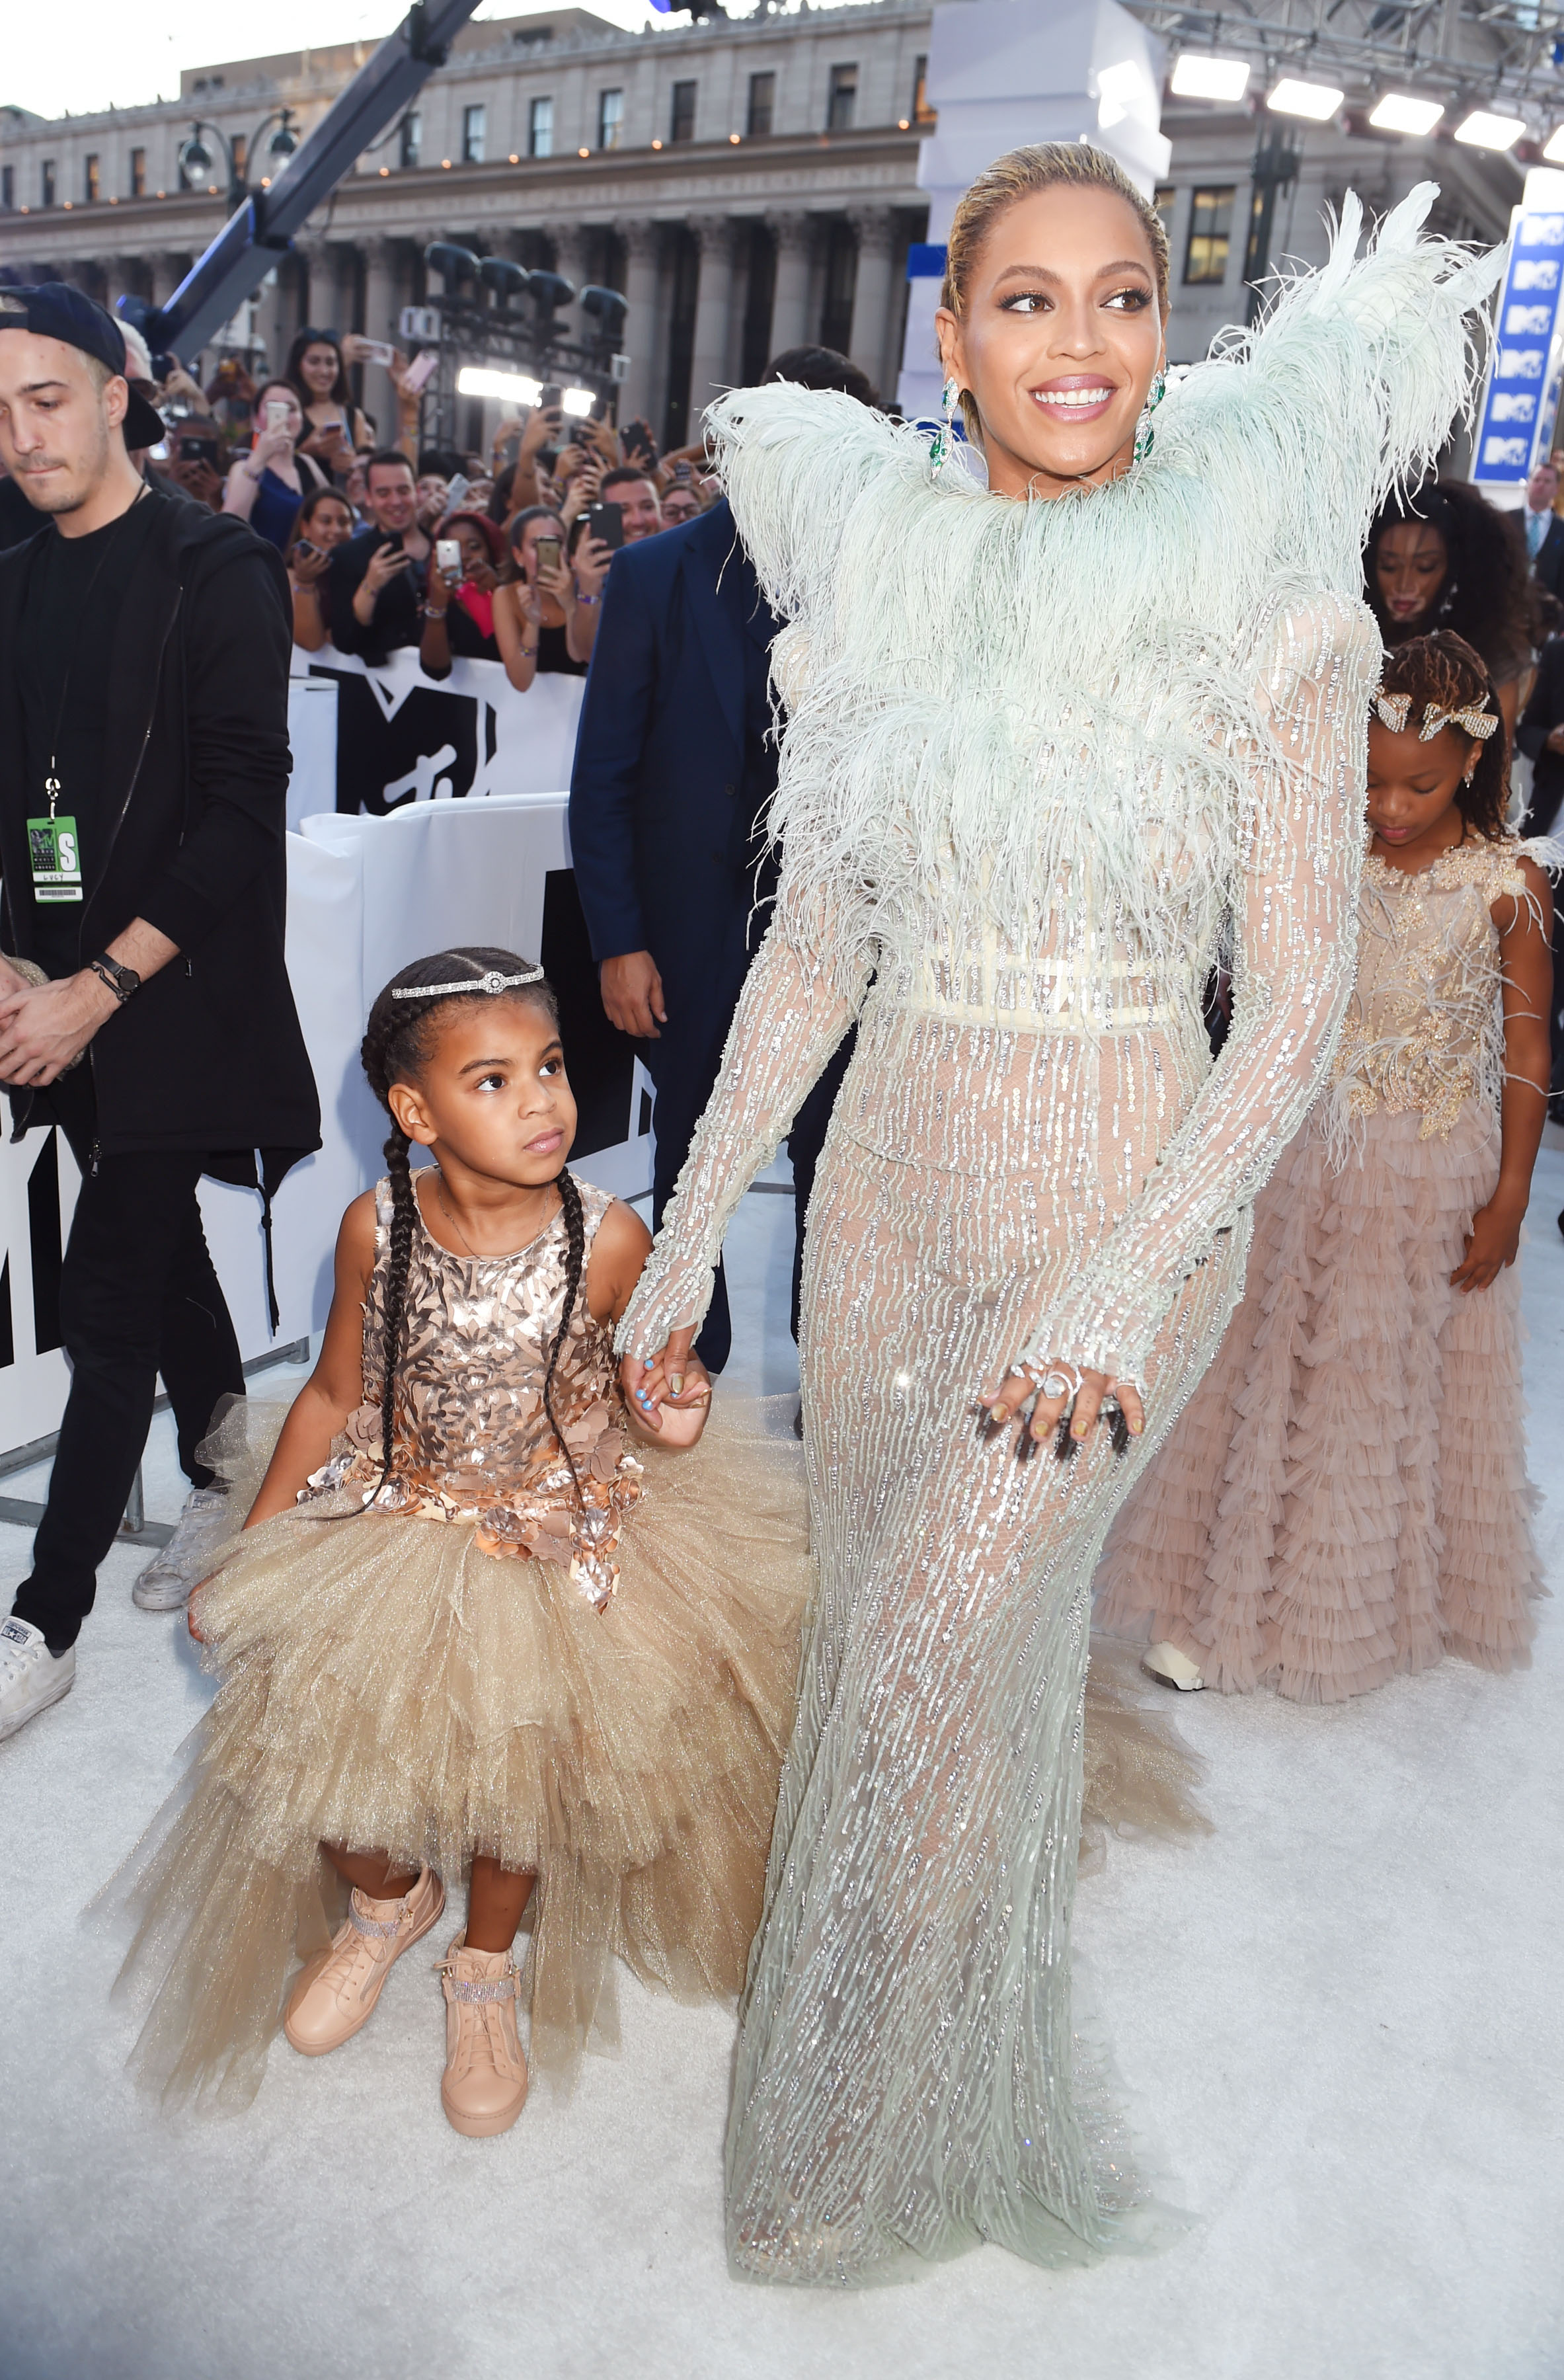 Blue Ivy's VMA Look Is Serious Flower Girl Inspo